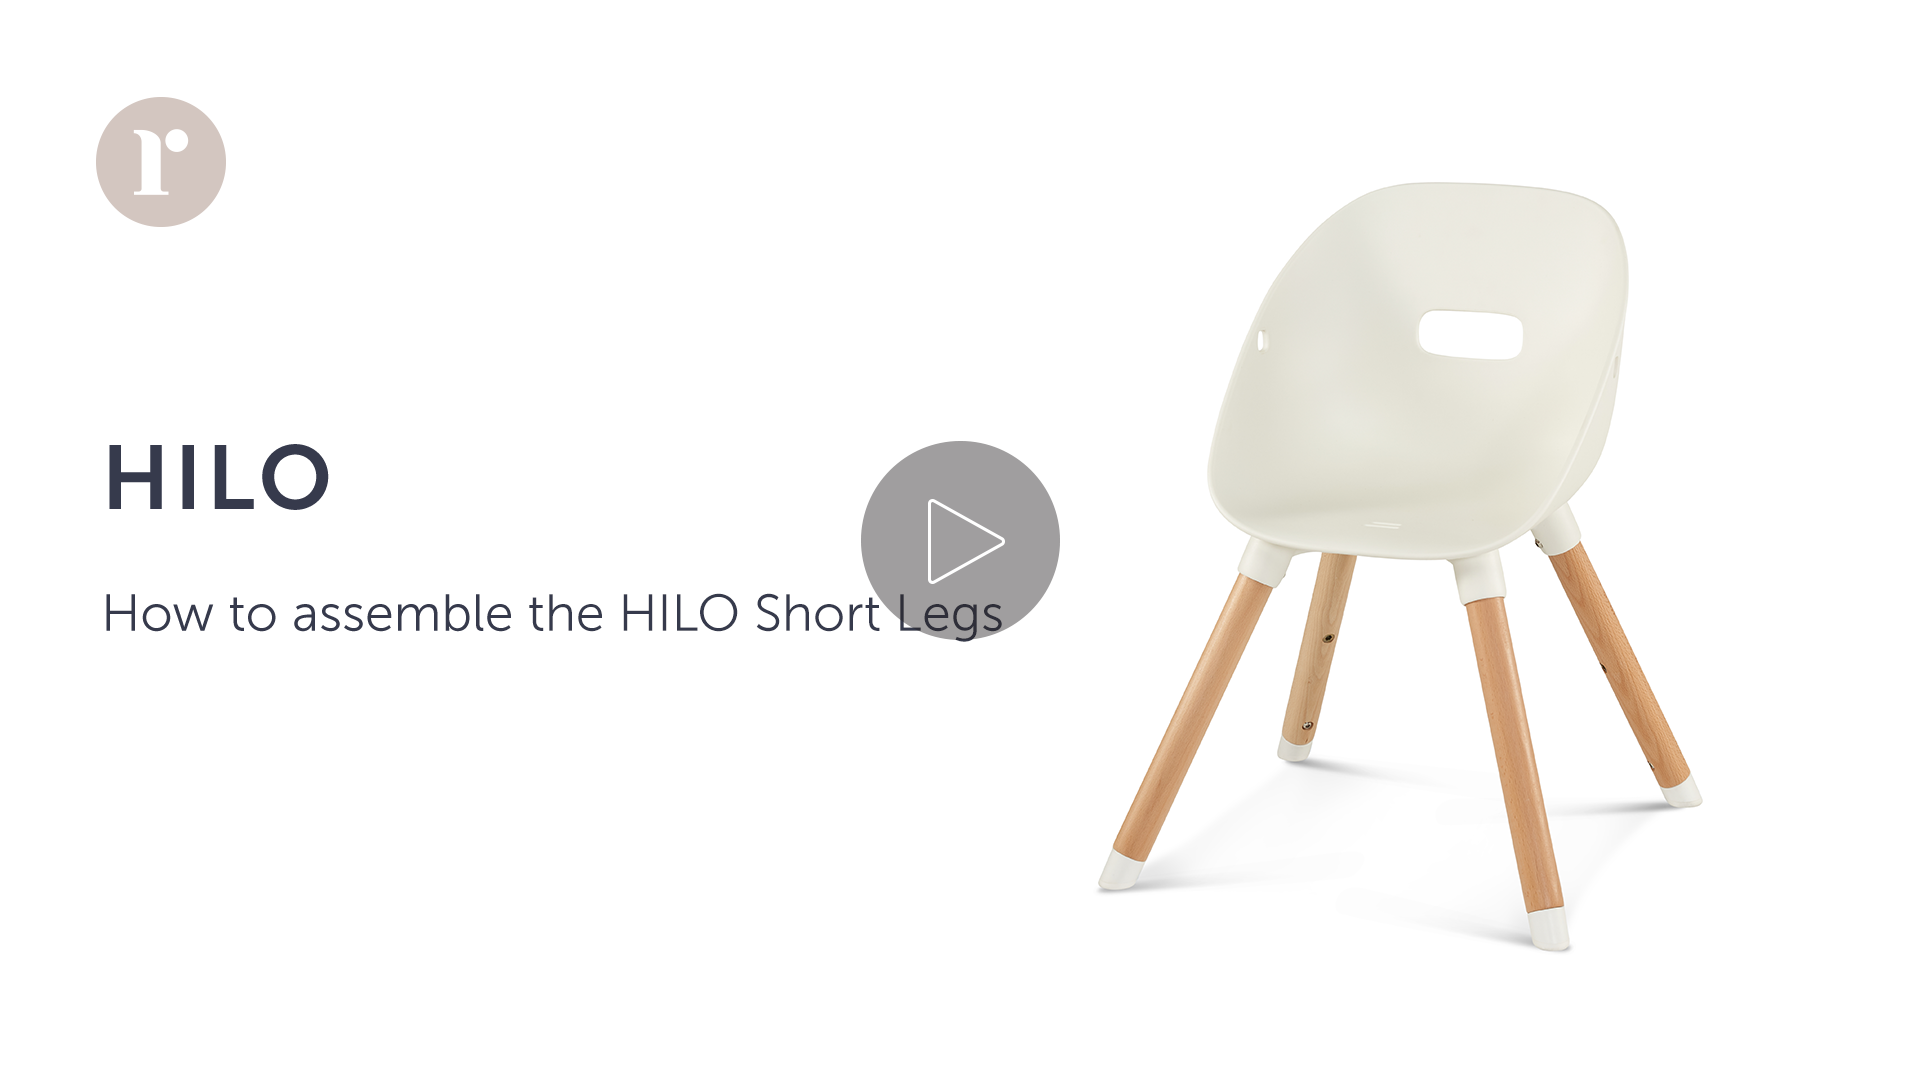 How to assemble the HILO Short Legs